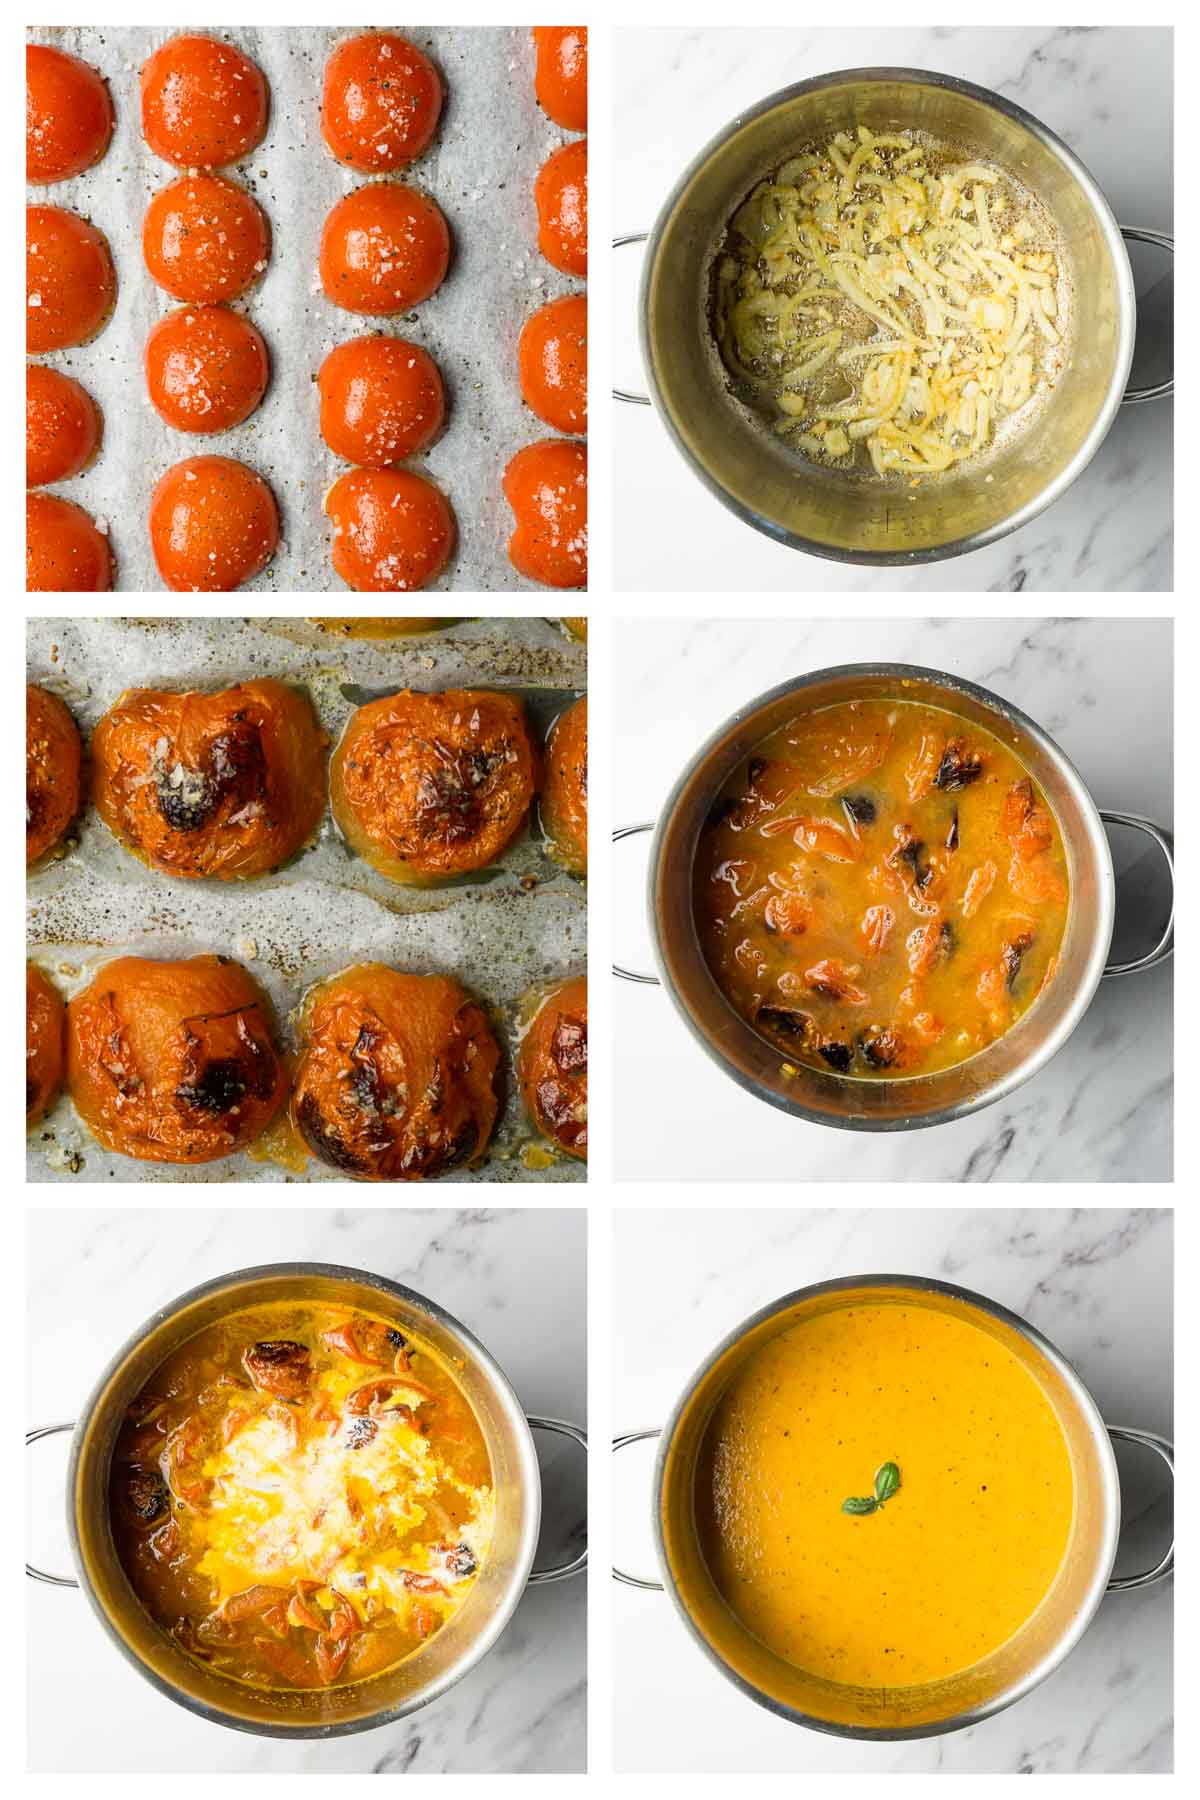 6 steps collage image showing how to make keto tomato soup.